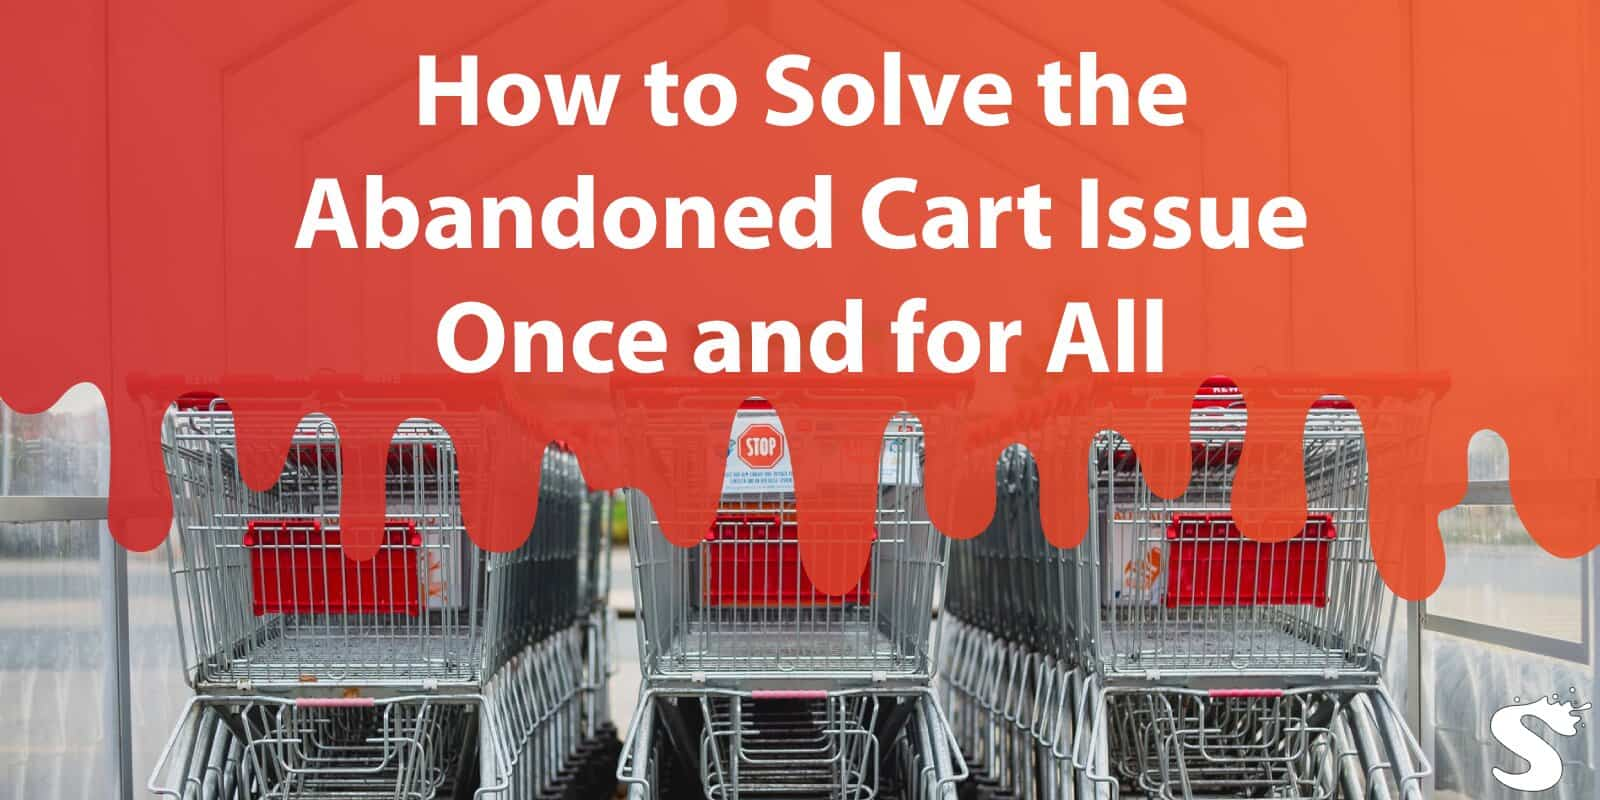 How to Solve the Abandoned Cart Issue Once and for All